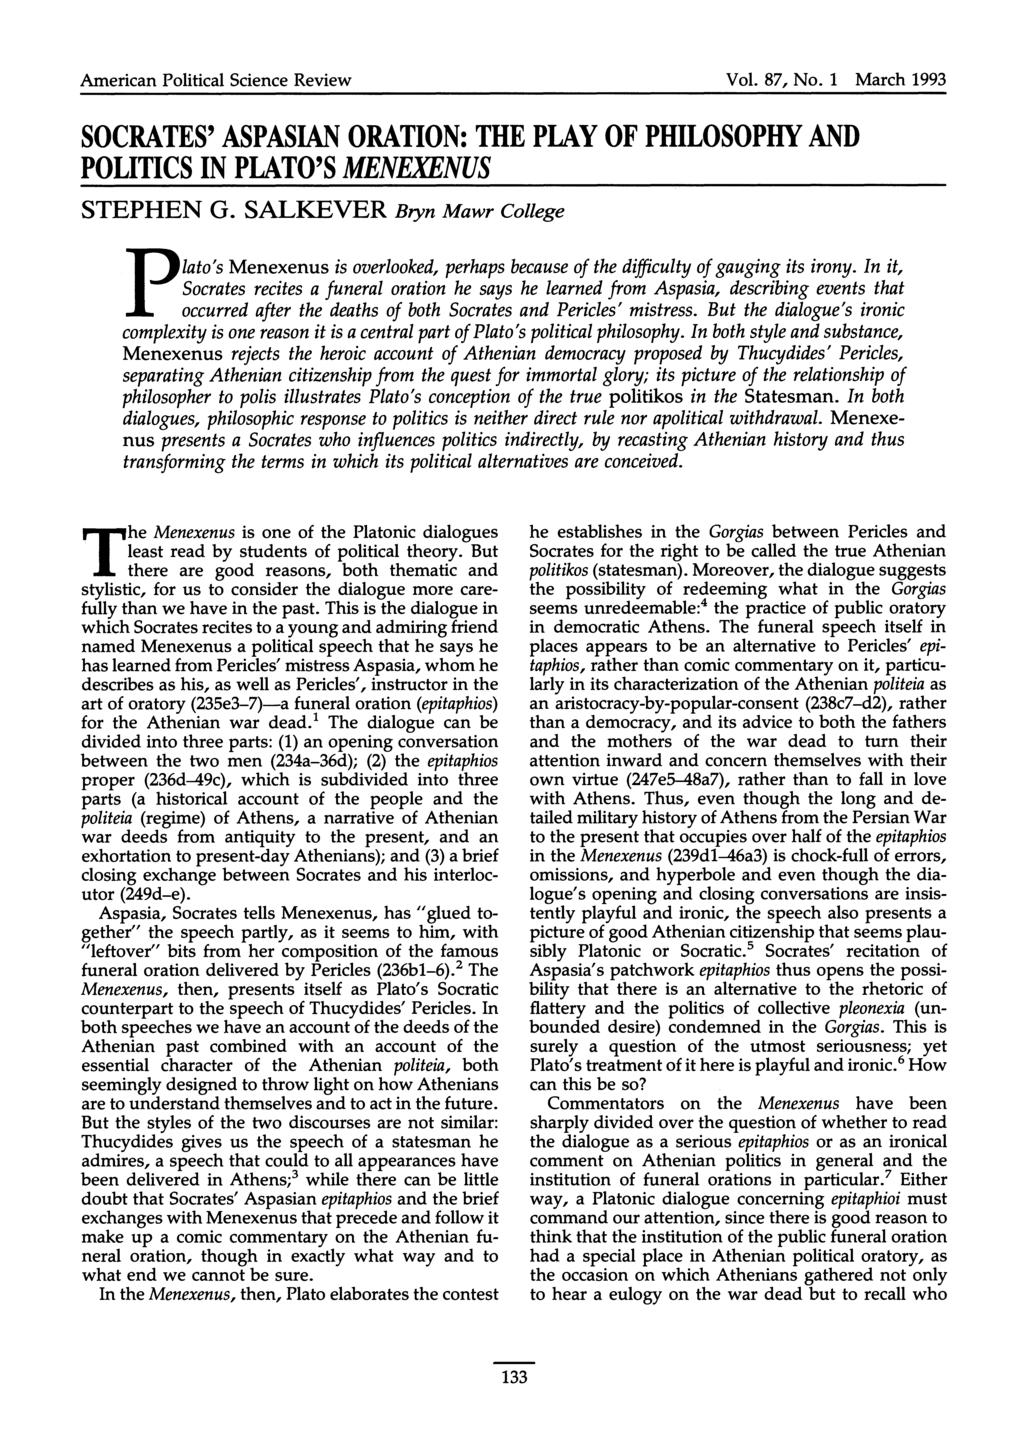 P American Political Science Review Vol. 87, No. 1 March 1993 SOCRATES' ASPASIAN ORATION: THE PLAY OF PHILOSOPHY AND POLITICS IN PLATO'S MENEXENUS STEPHEN G.